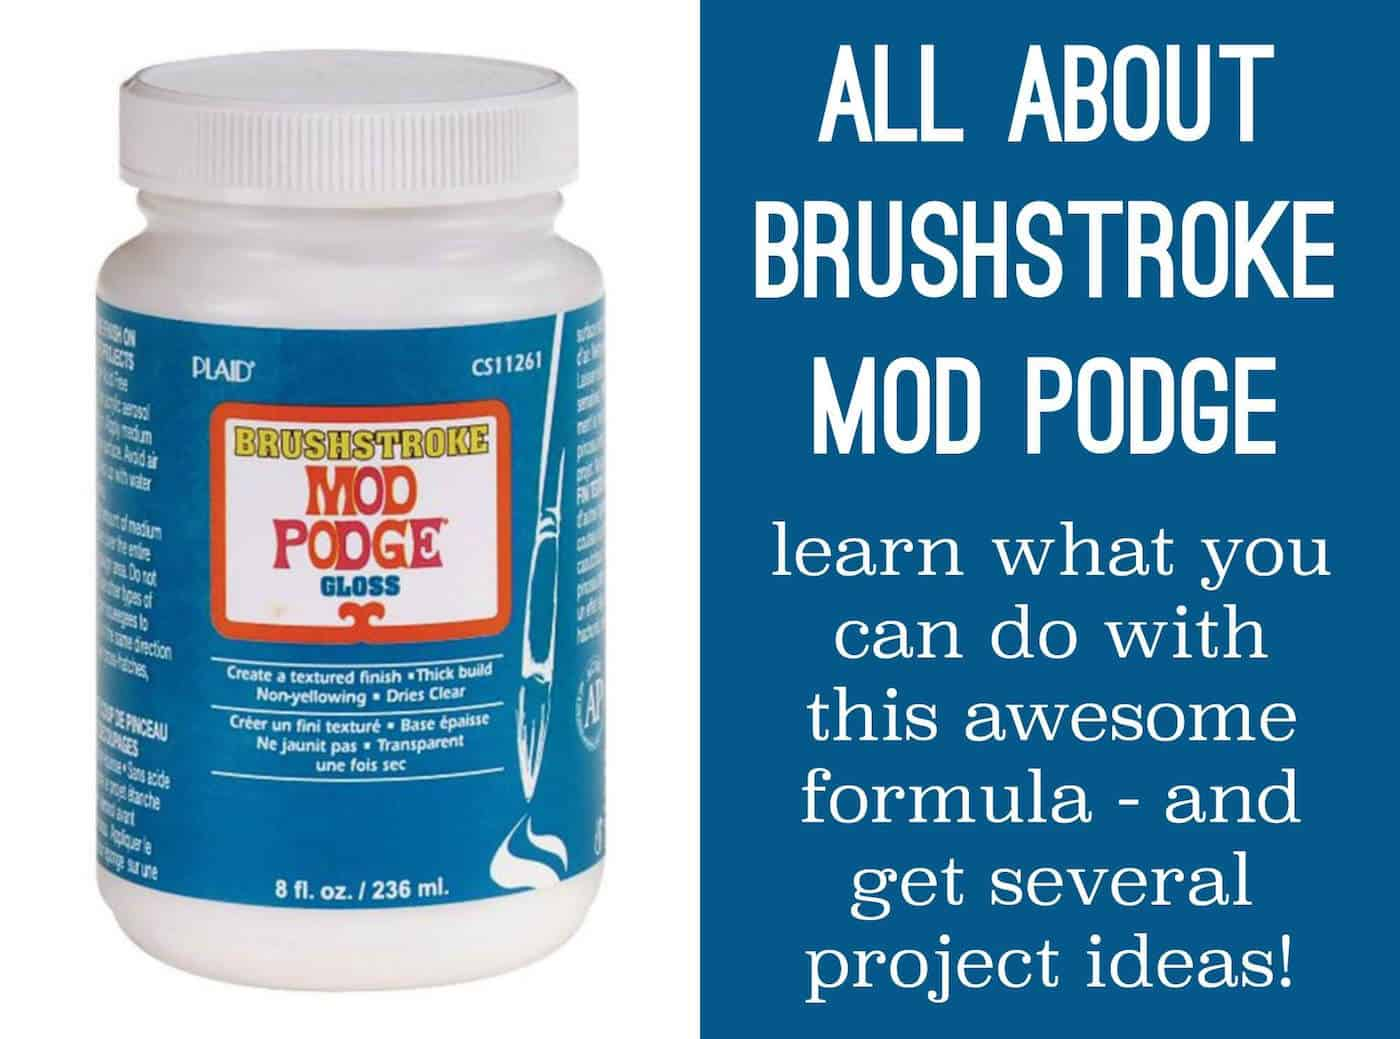 Learn all about the Brushstroke Mod Podge formula! Find out what it is, how to use it, and see some unique projects you can make.